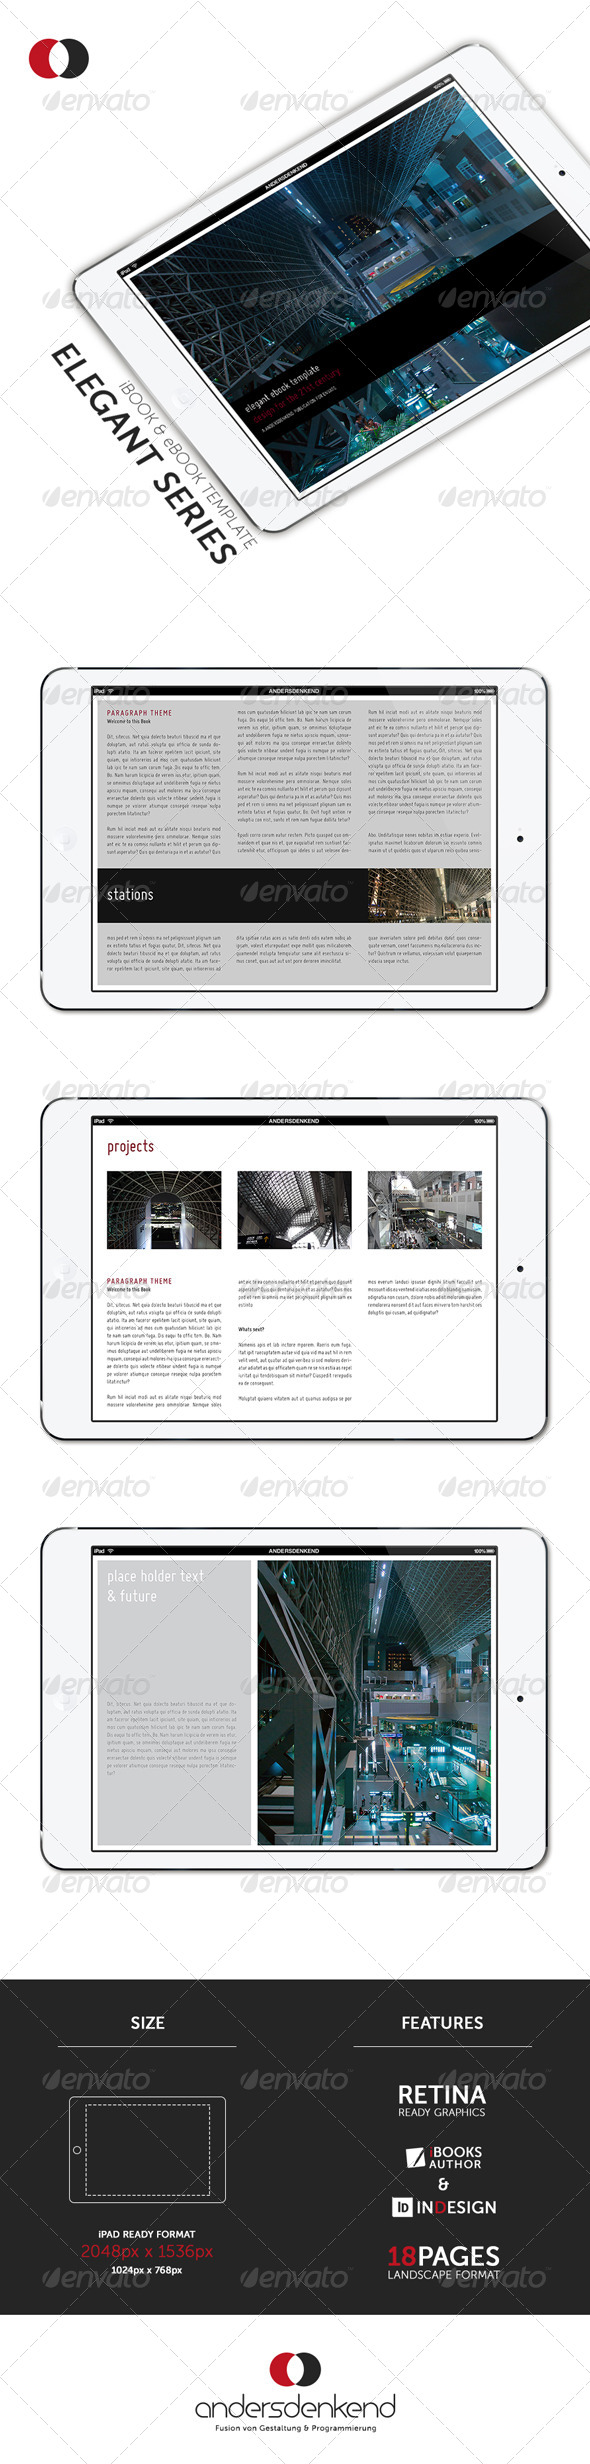 ibook template